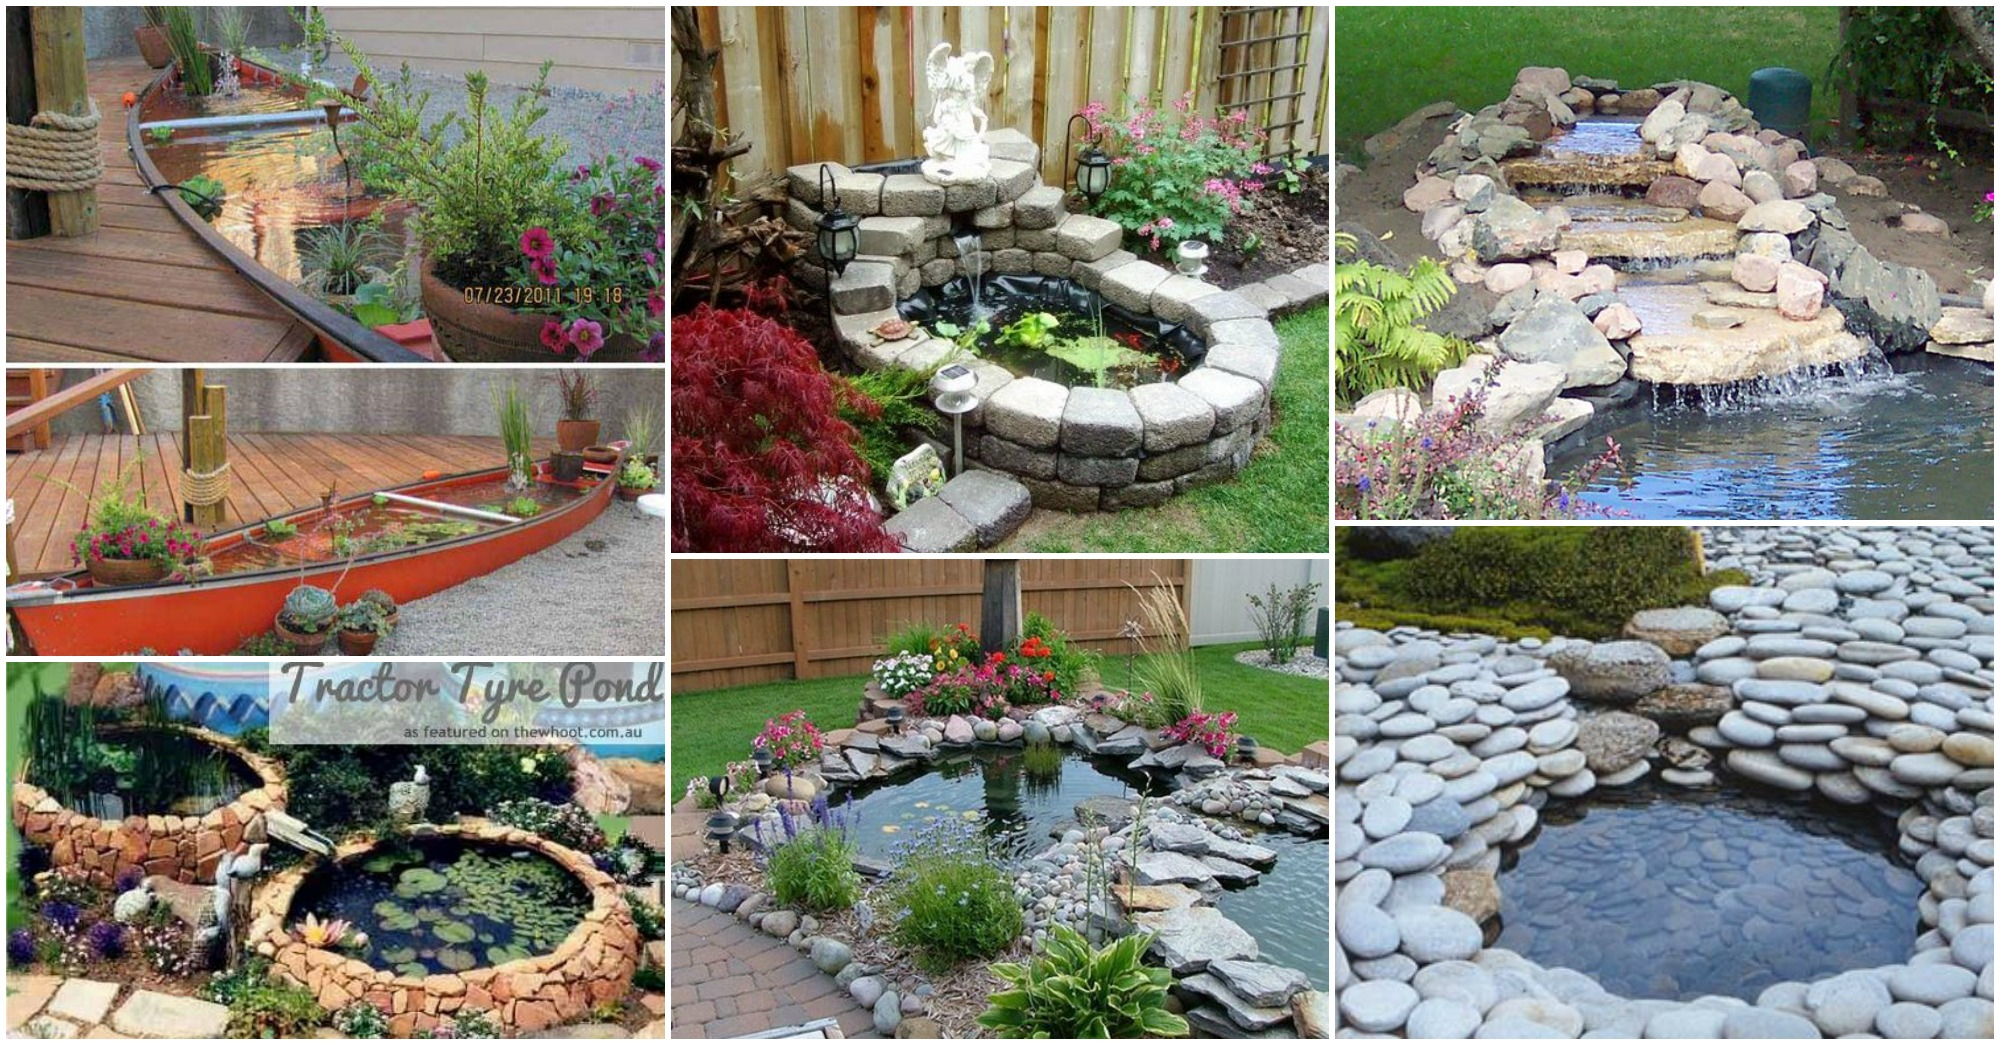 20 Diy Backyard Pond Ideas On A Budget That You Will Love inside Backyard Small Pond Ideas